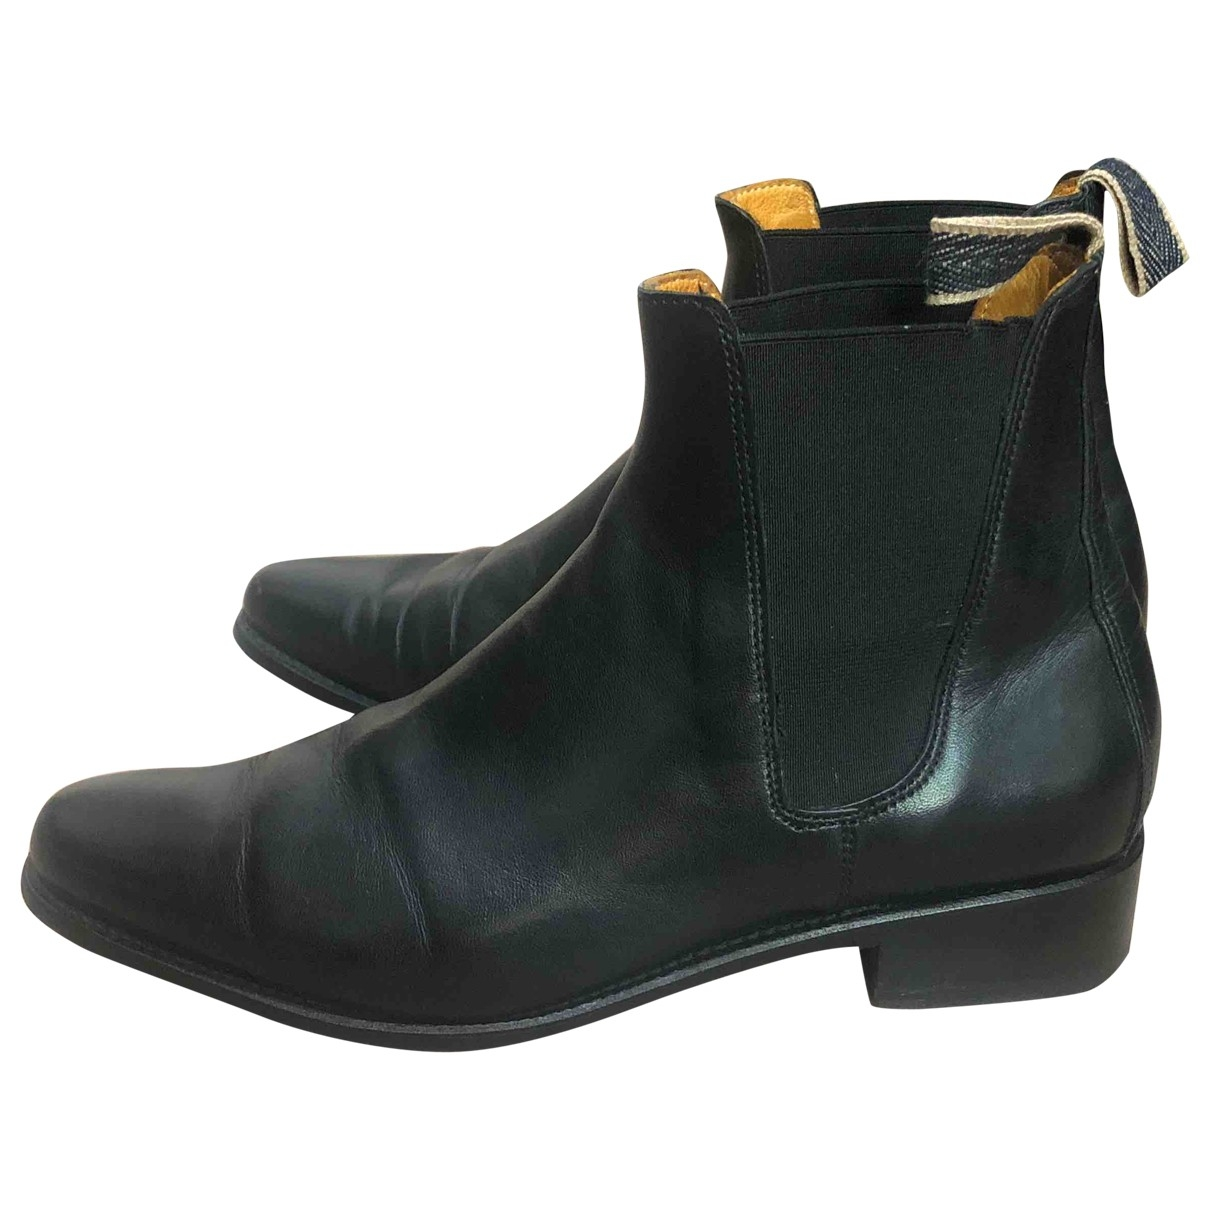 Ludwig Reiter \N Black Leather Ankle boots for Women 6.5 UK